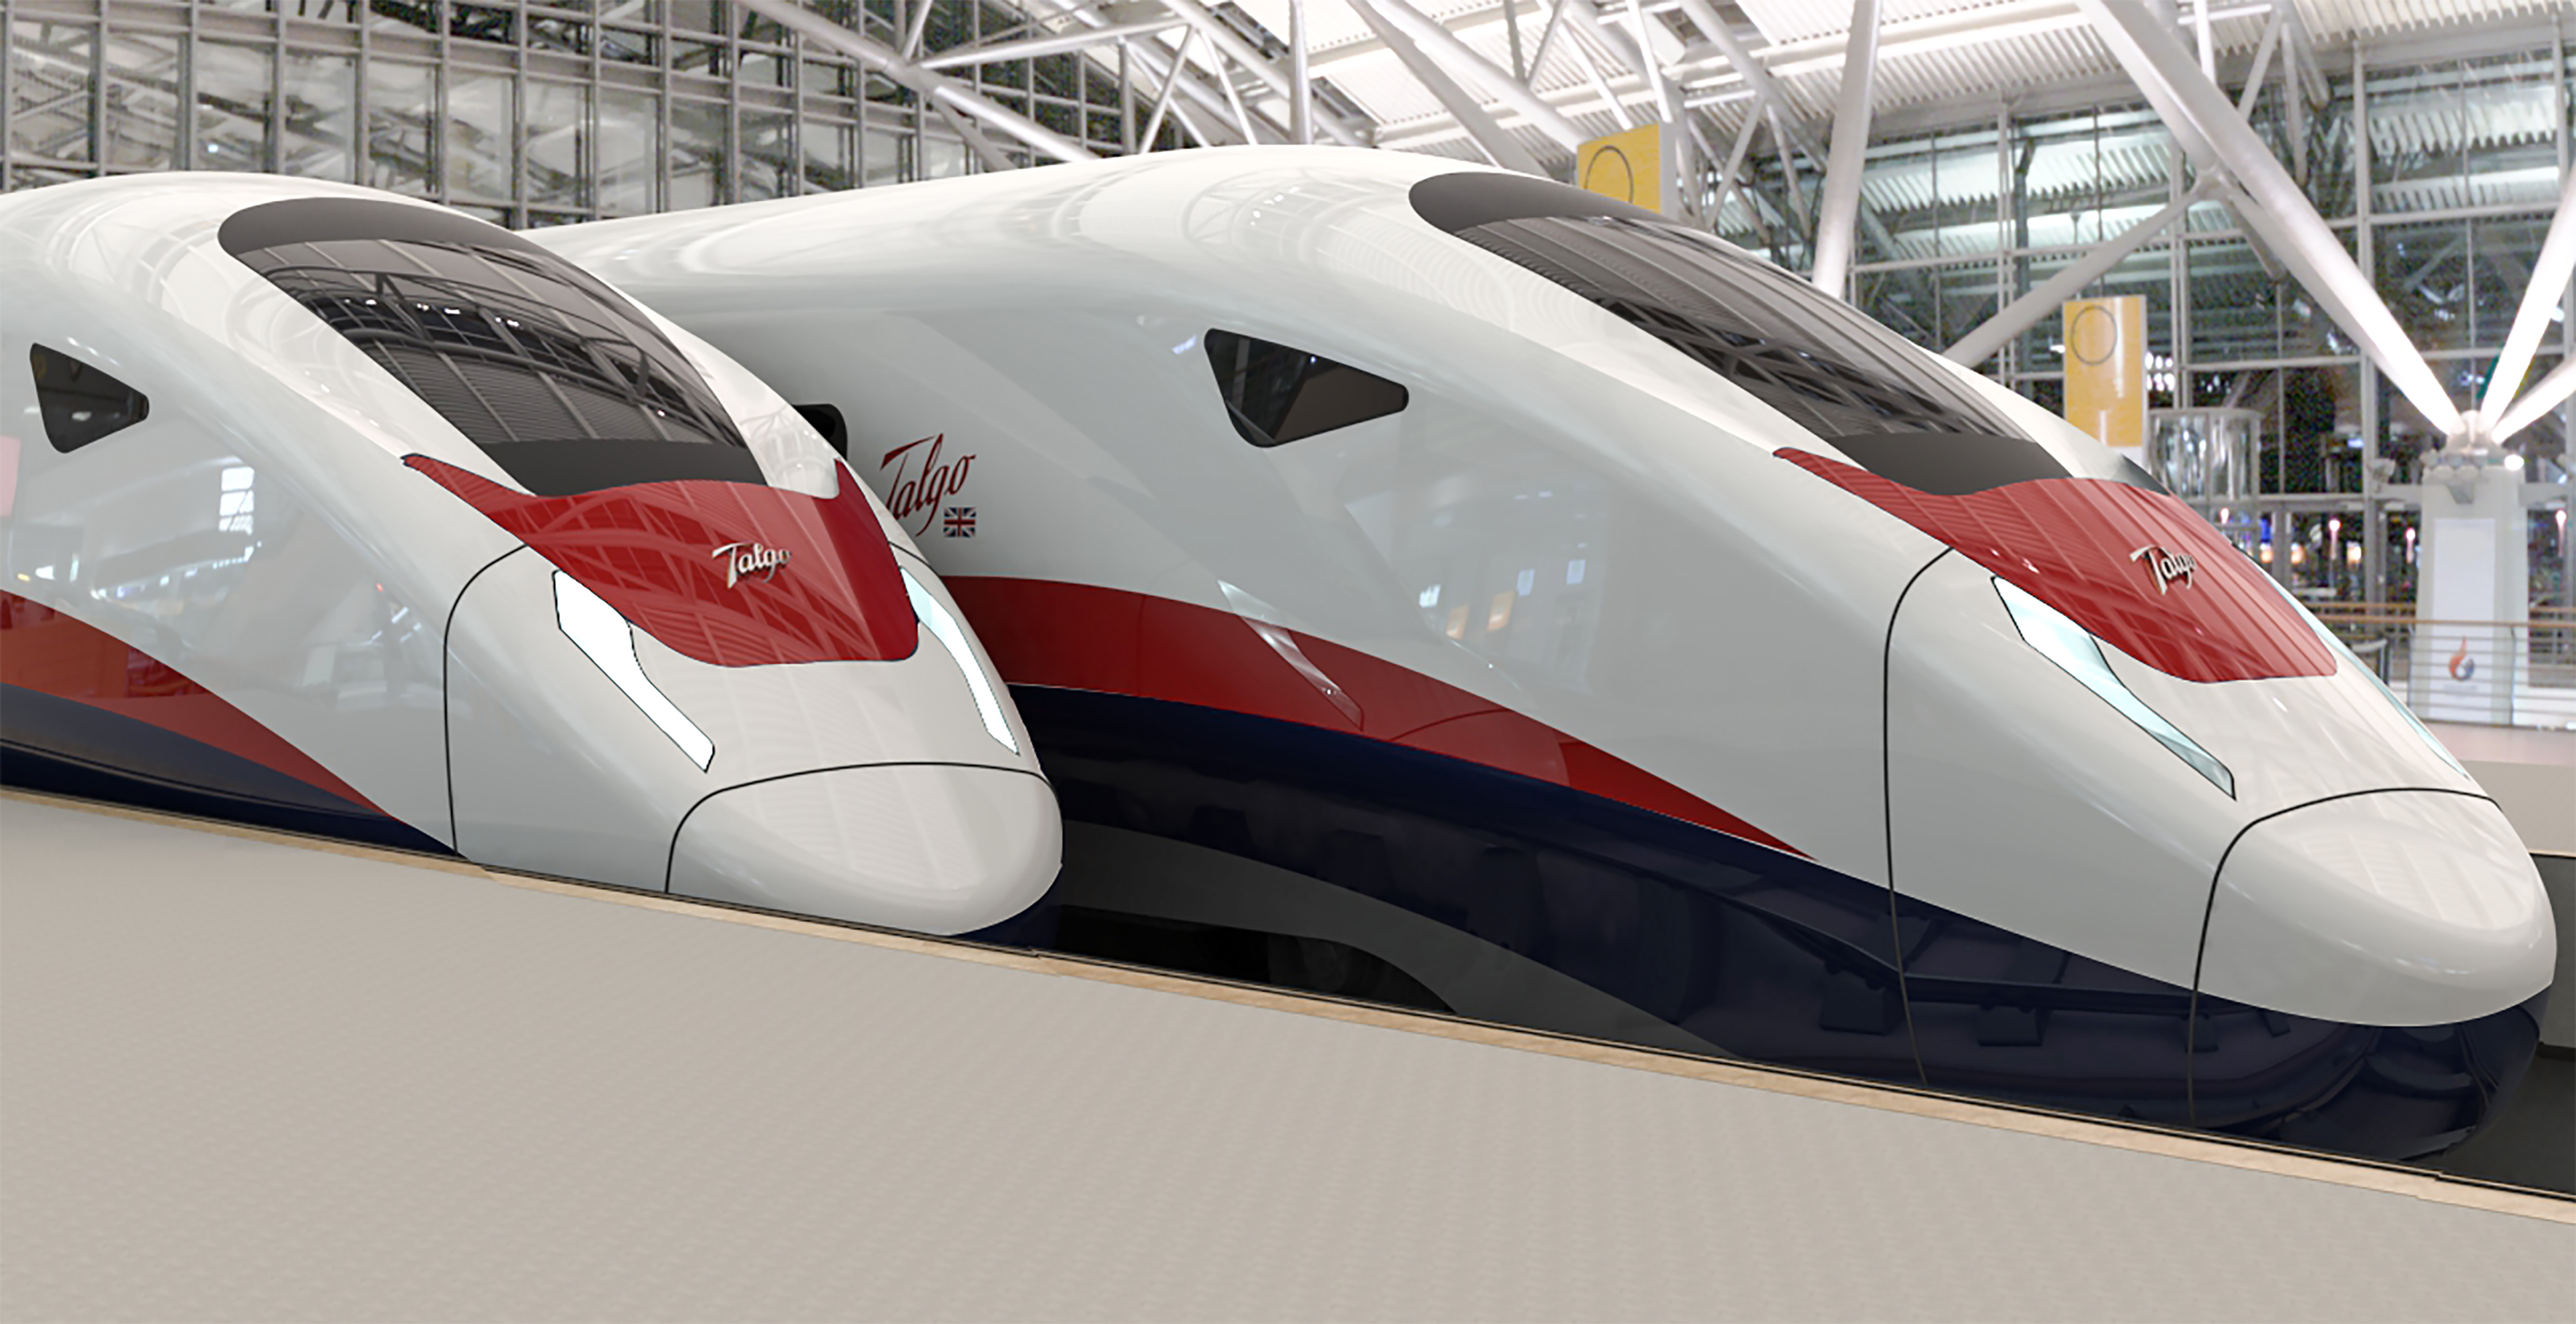 , St Helens could see train manufacturing coming home, Skem News - The Top Source for Skelmersdale News